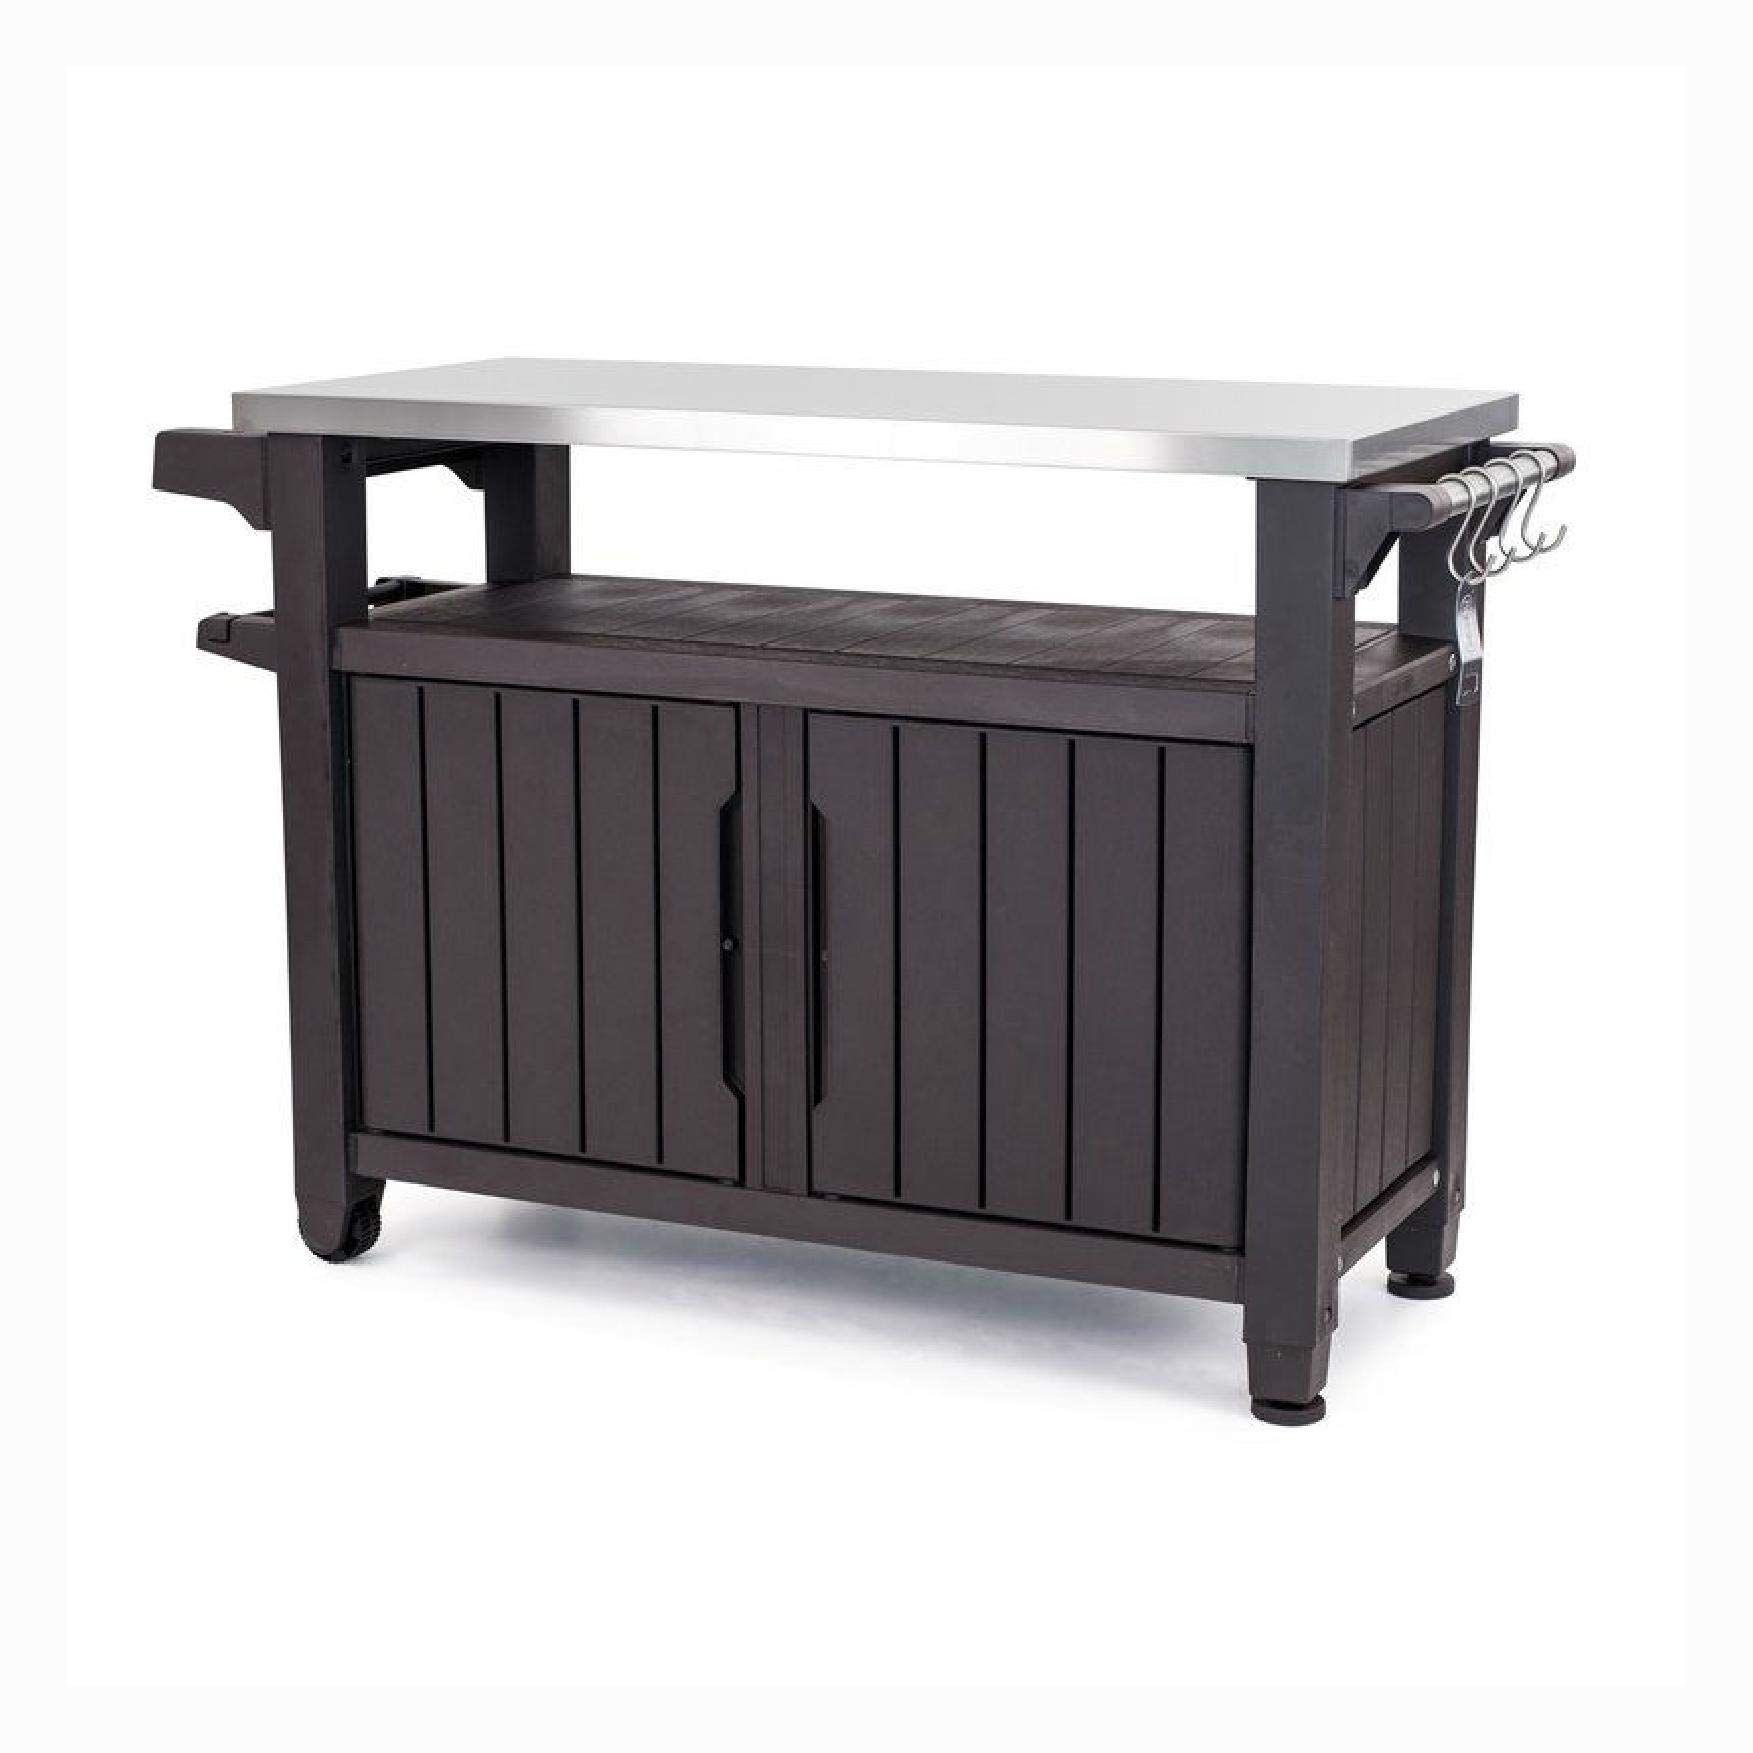 Patio Tables, Outdoor Grill Party Caster Bar Serving Cart with Storage Dark Brown by HEATAPPLY